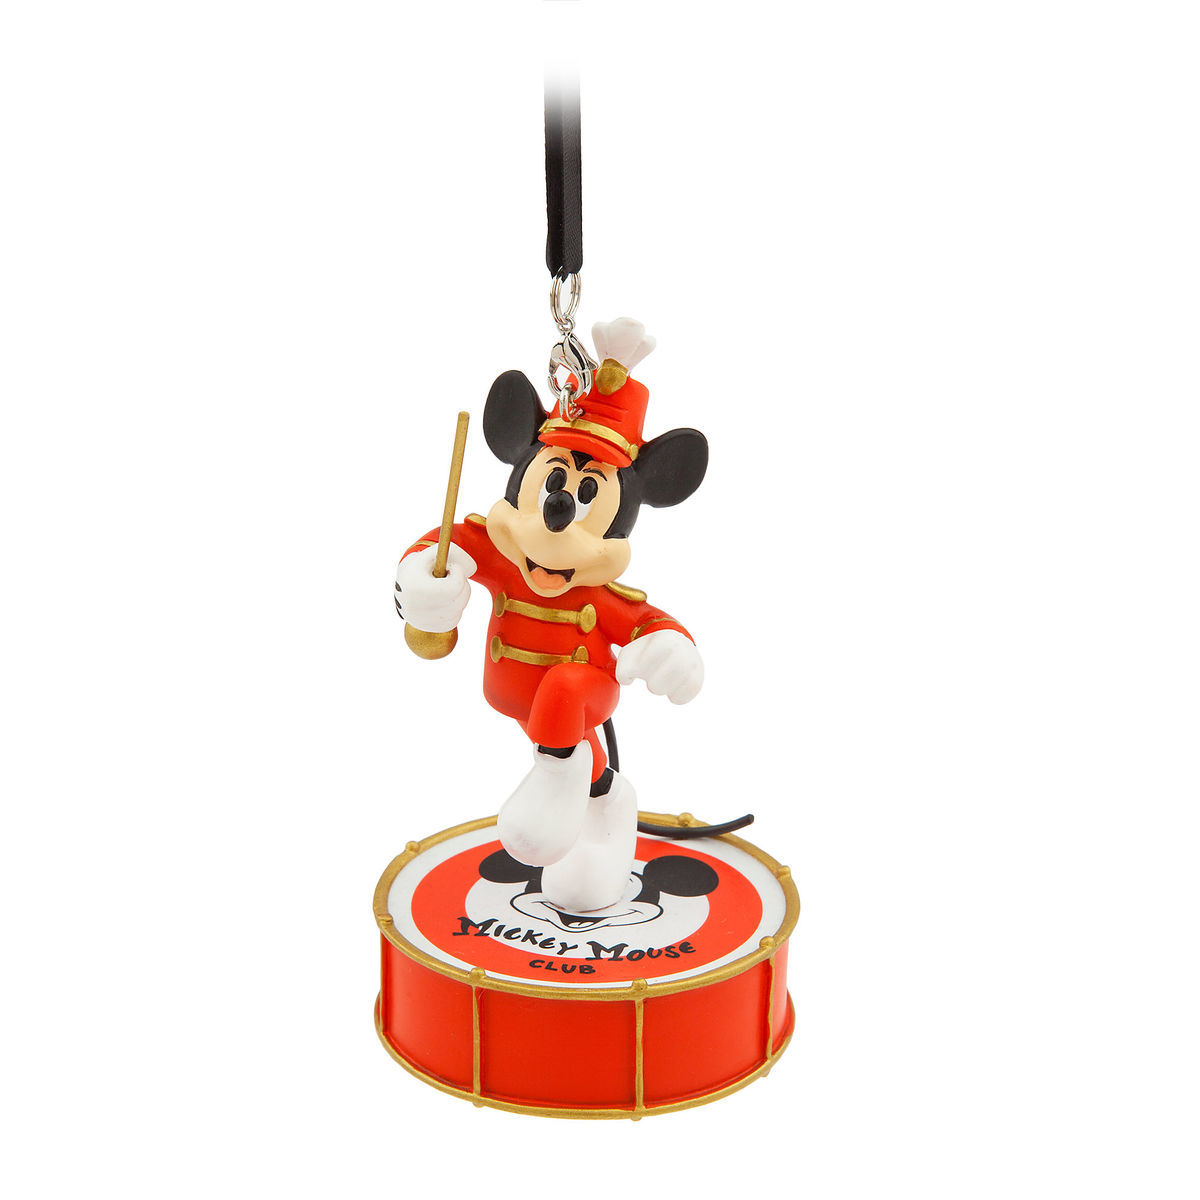 Disney Musical Figure Ornament - Mickey Mouse Club